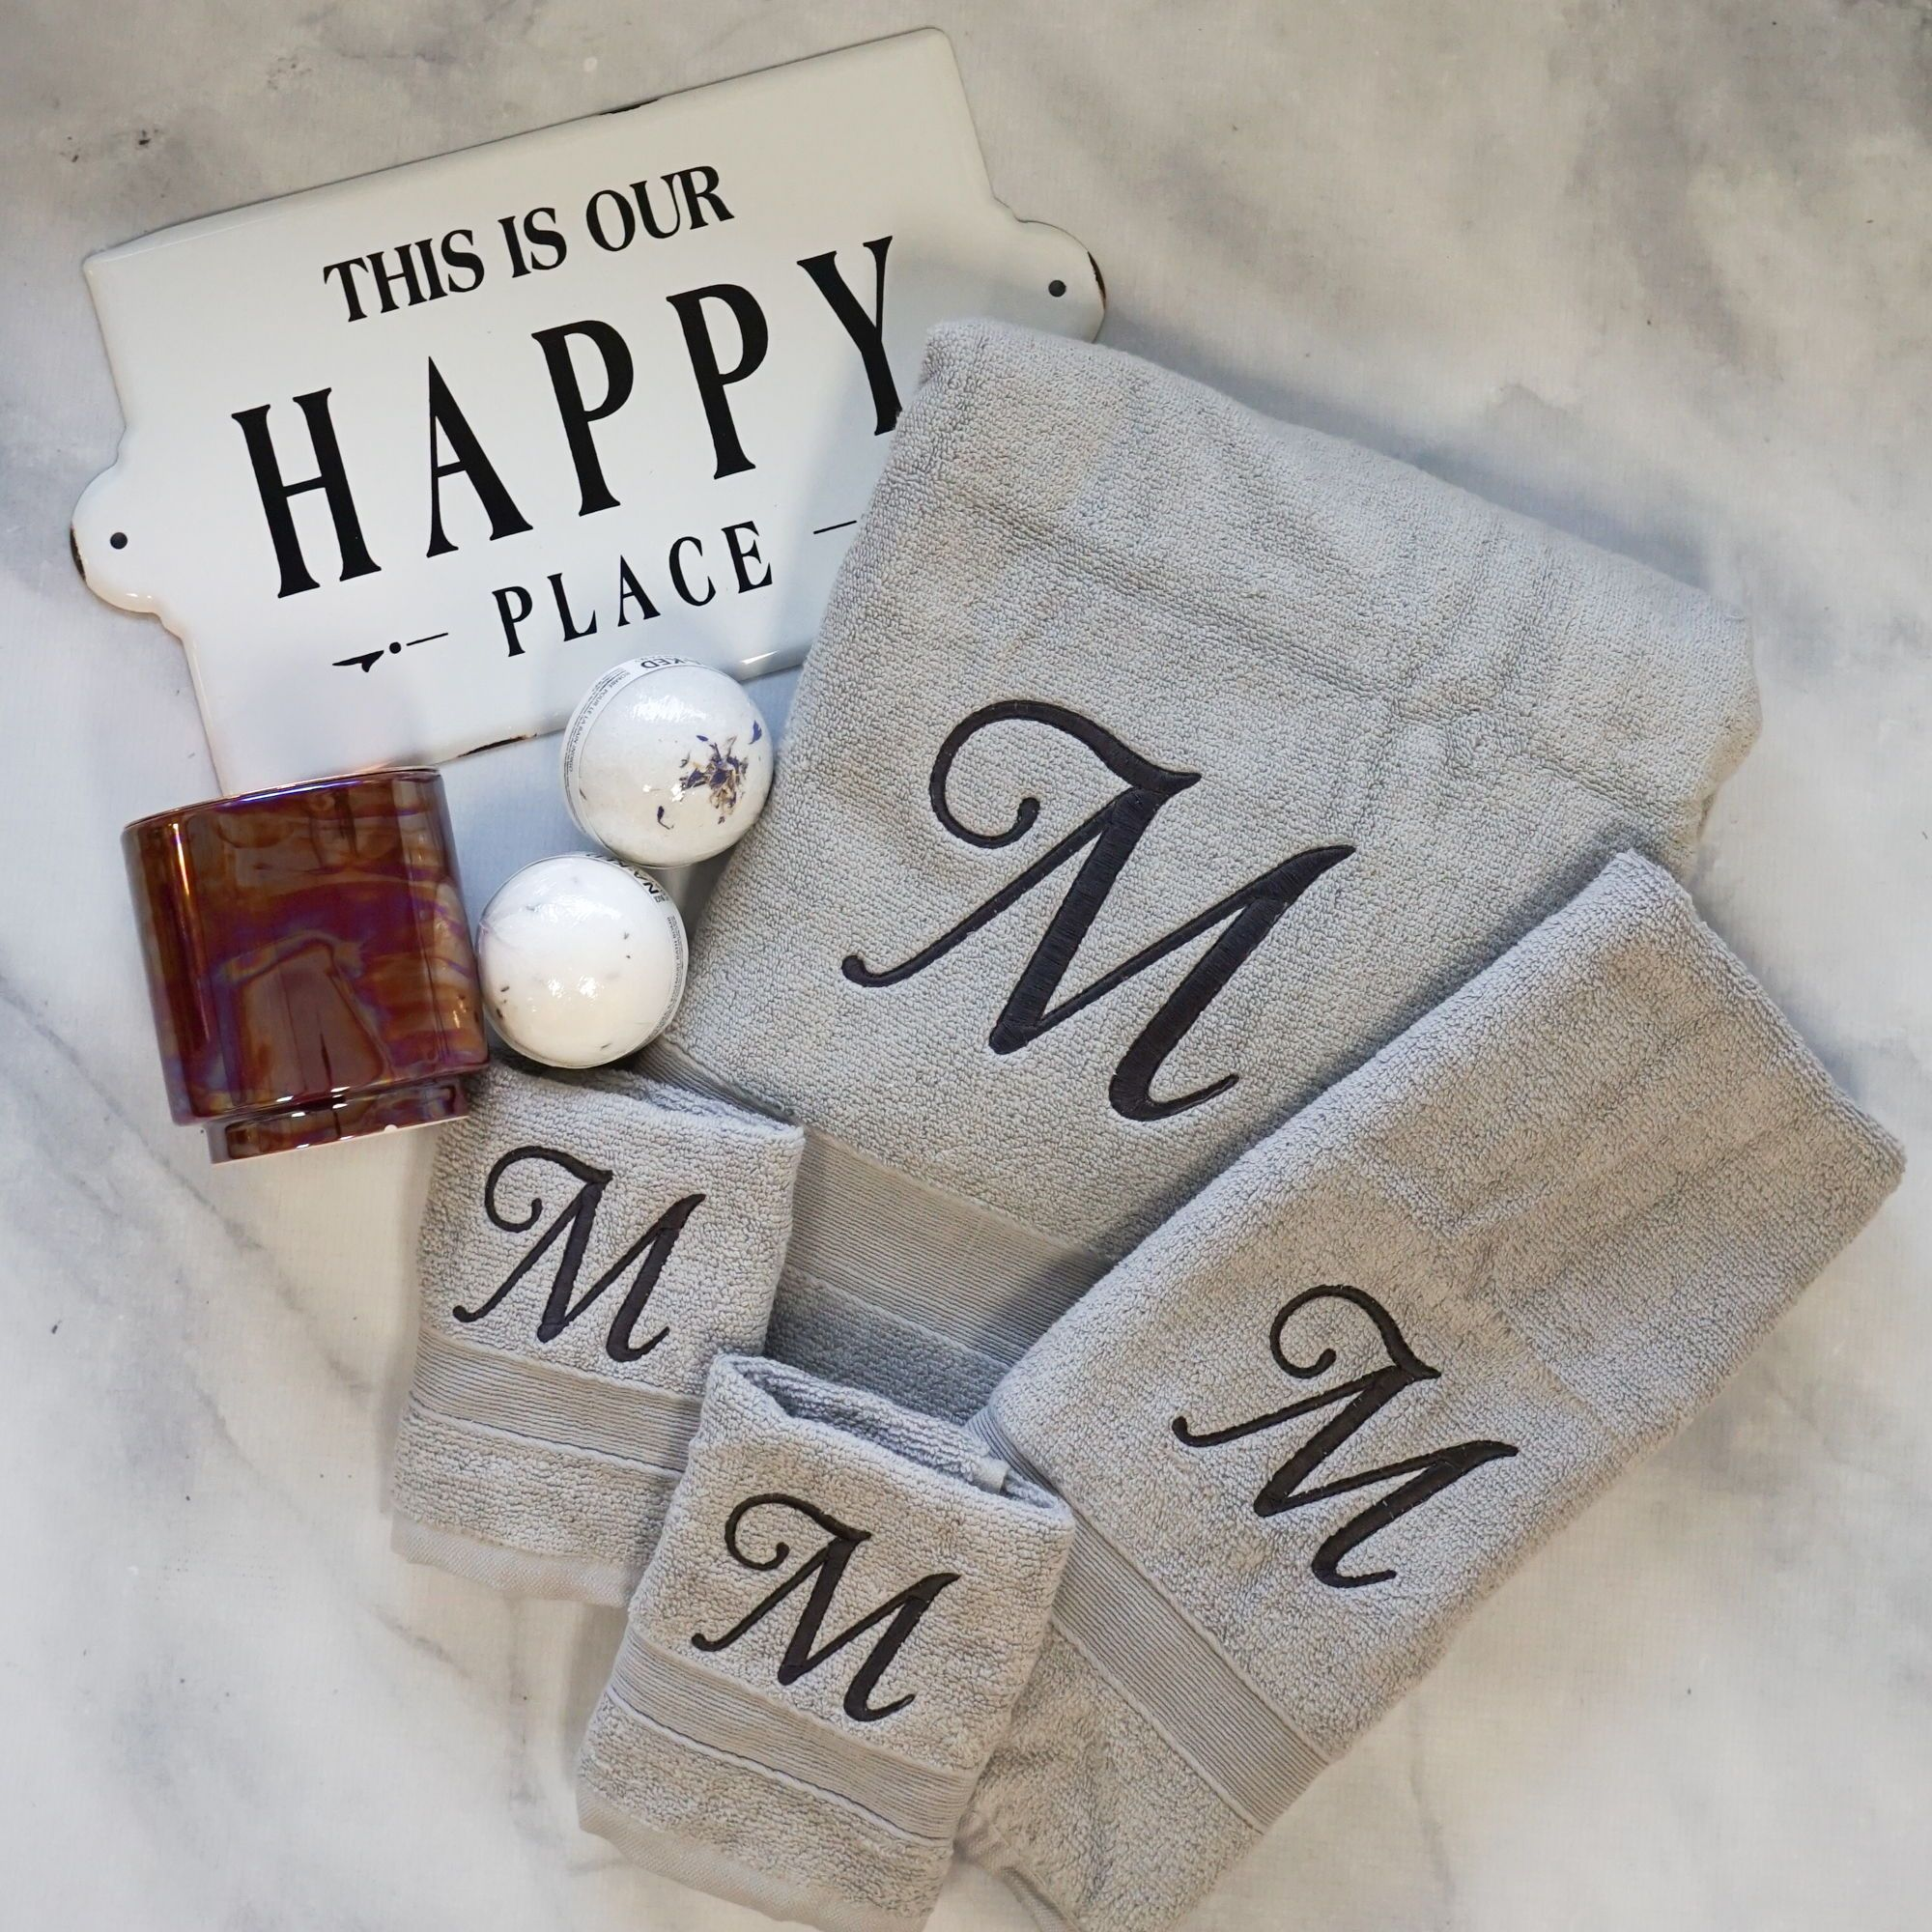 Monogrammed Bath Towels In 2020 Embroidered Bath Towels New Home Gifts Monogram Towels